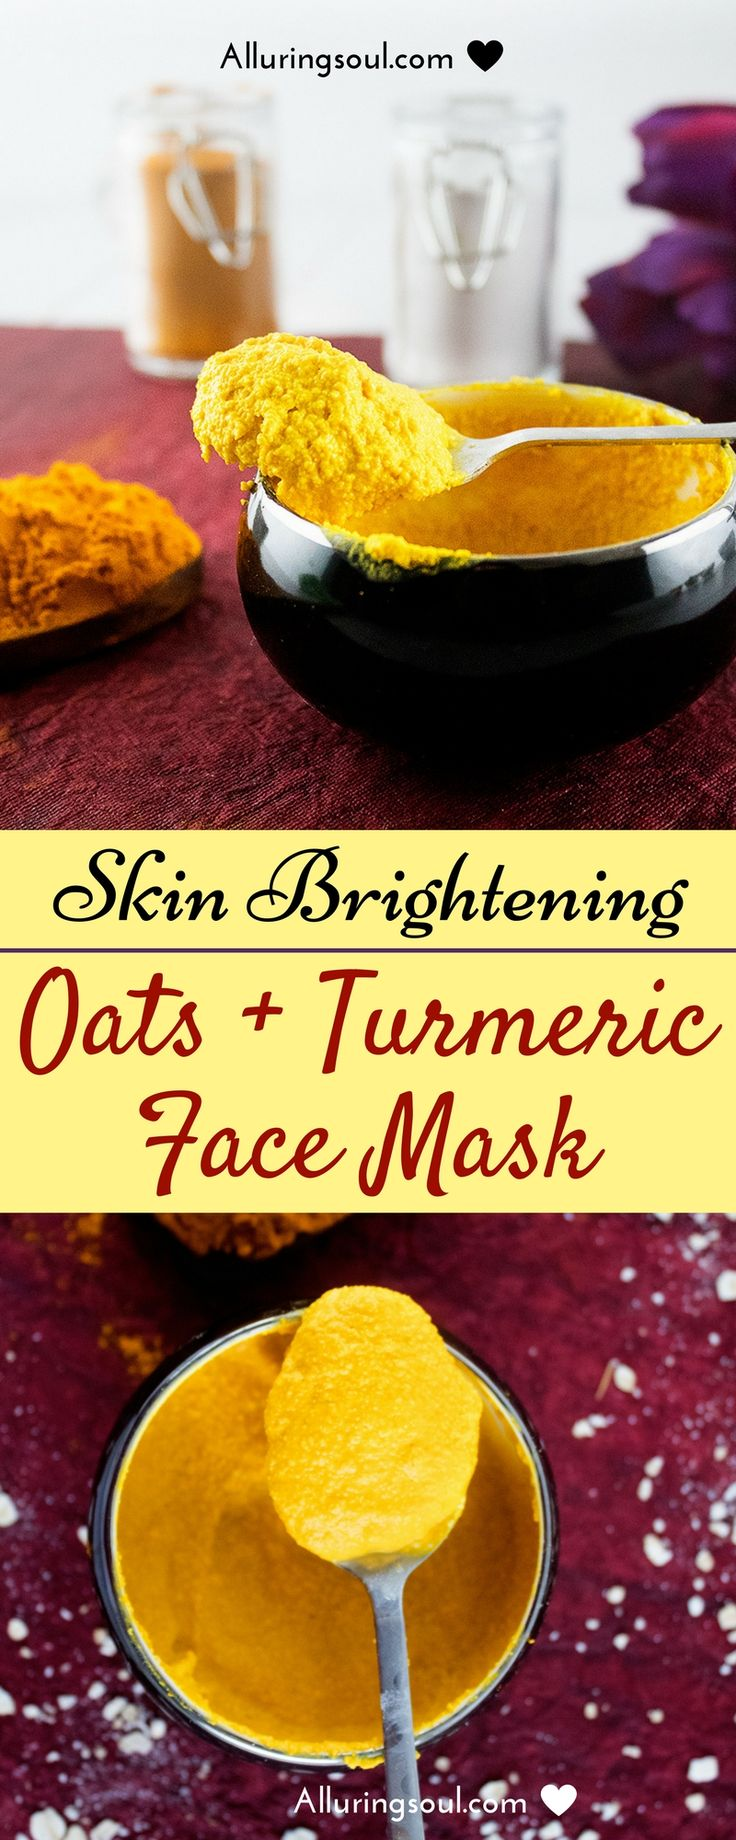 Turmeric face mask is a golden boon for our skin. It cures skin problems like acne, large pores, lightens skin tone and exfoliates dead skin cells.